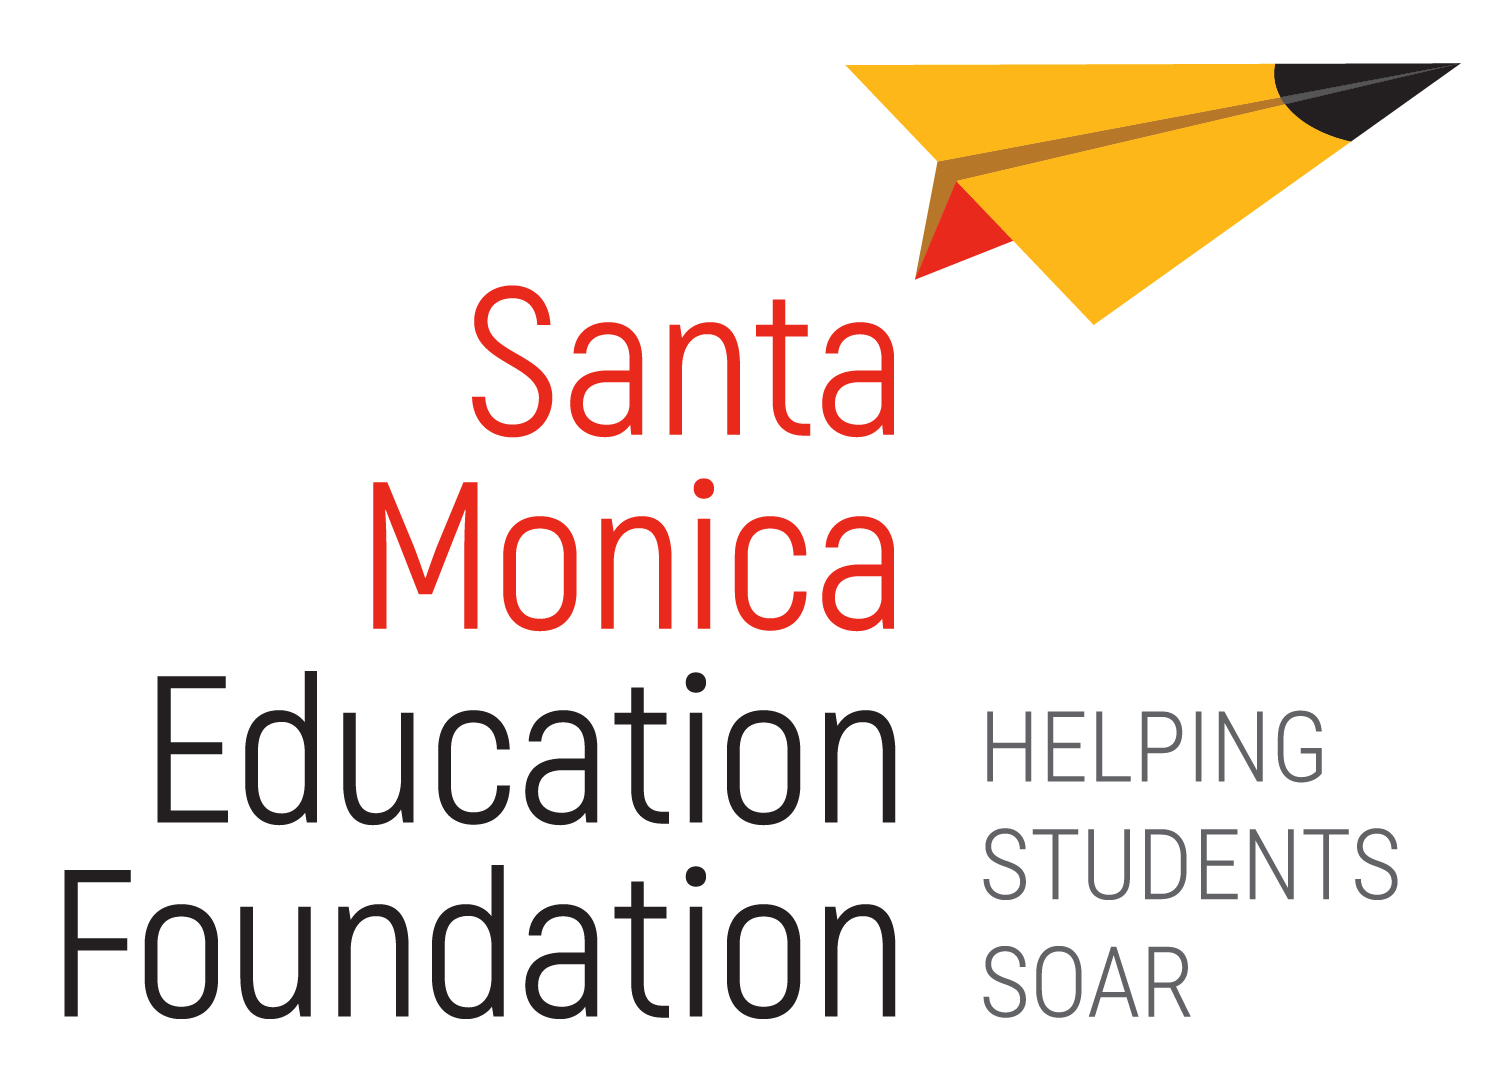 Why Donate? - Your donations to the Ed Foundation impact the lives of every student in our Santa Monica public schools. Contributions fund excellent programs, from arts to STEM to wellness, that shape the next generation of problem solvers, visionaries and global citizens.